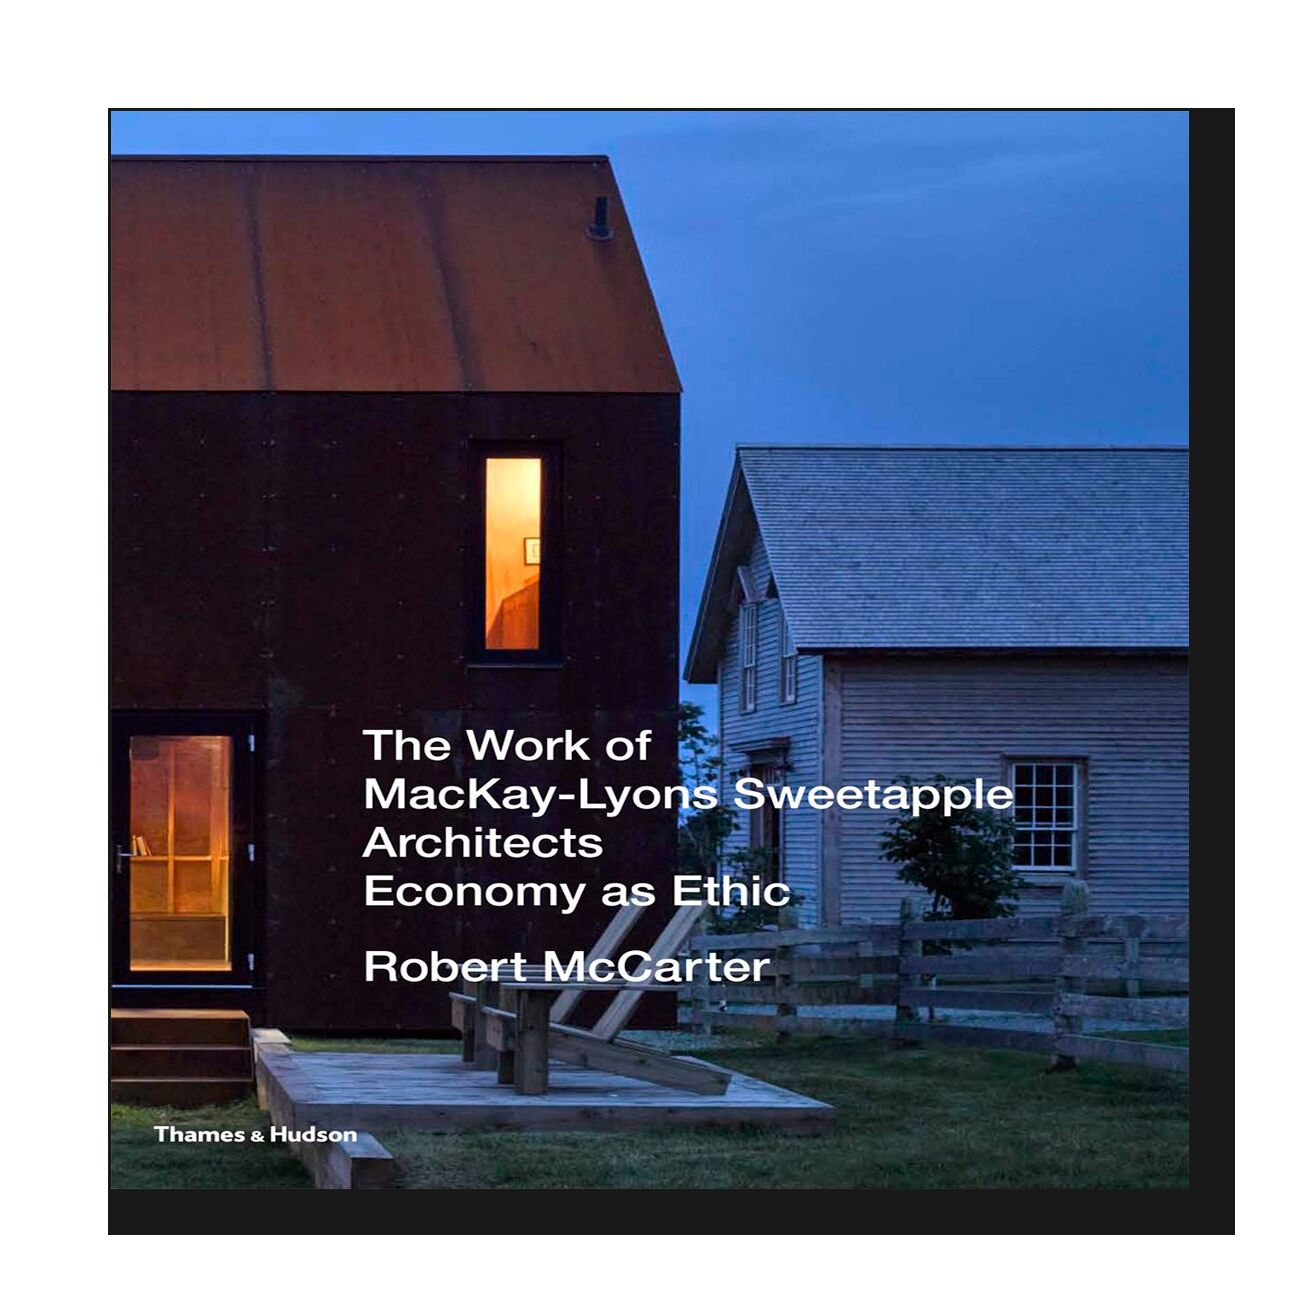 Work of Mackay Lyons Sweetapple Architects: Economy as Ethic